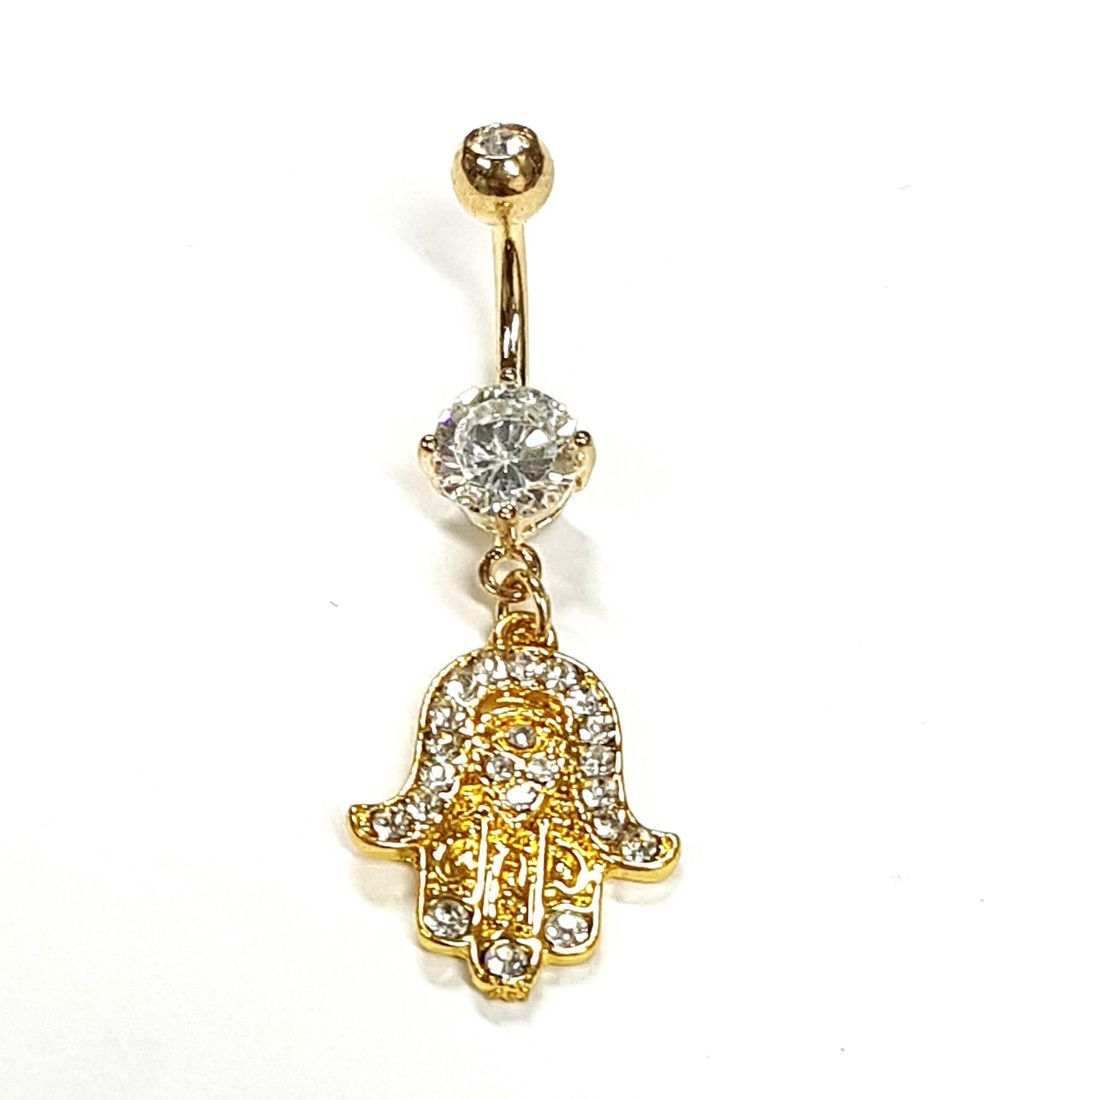 1.6mm x 10mm Gold & Crystal Hamsa Titanium Navel Bar   available at Kazbah online and our Leicester City Centre Shop